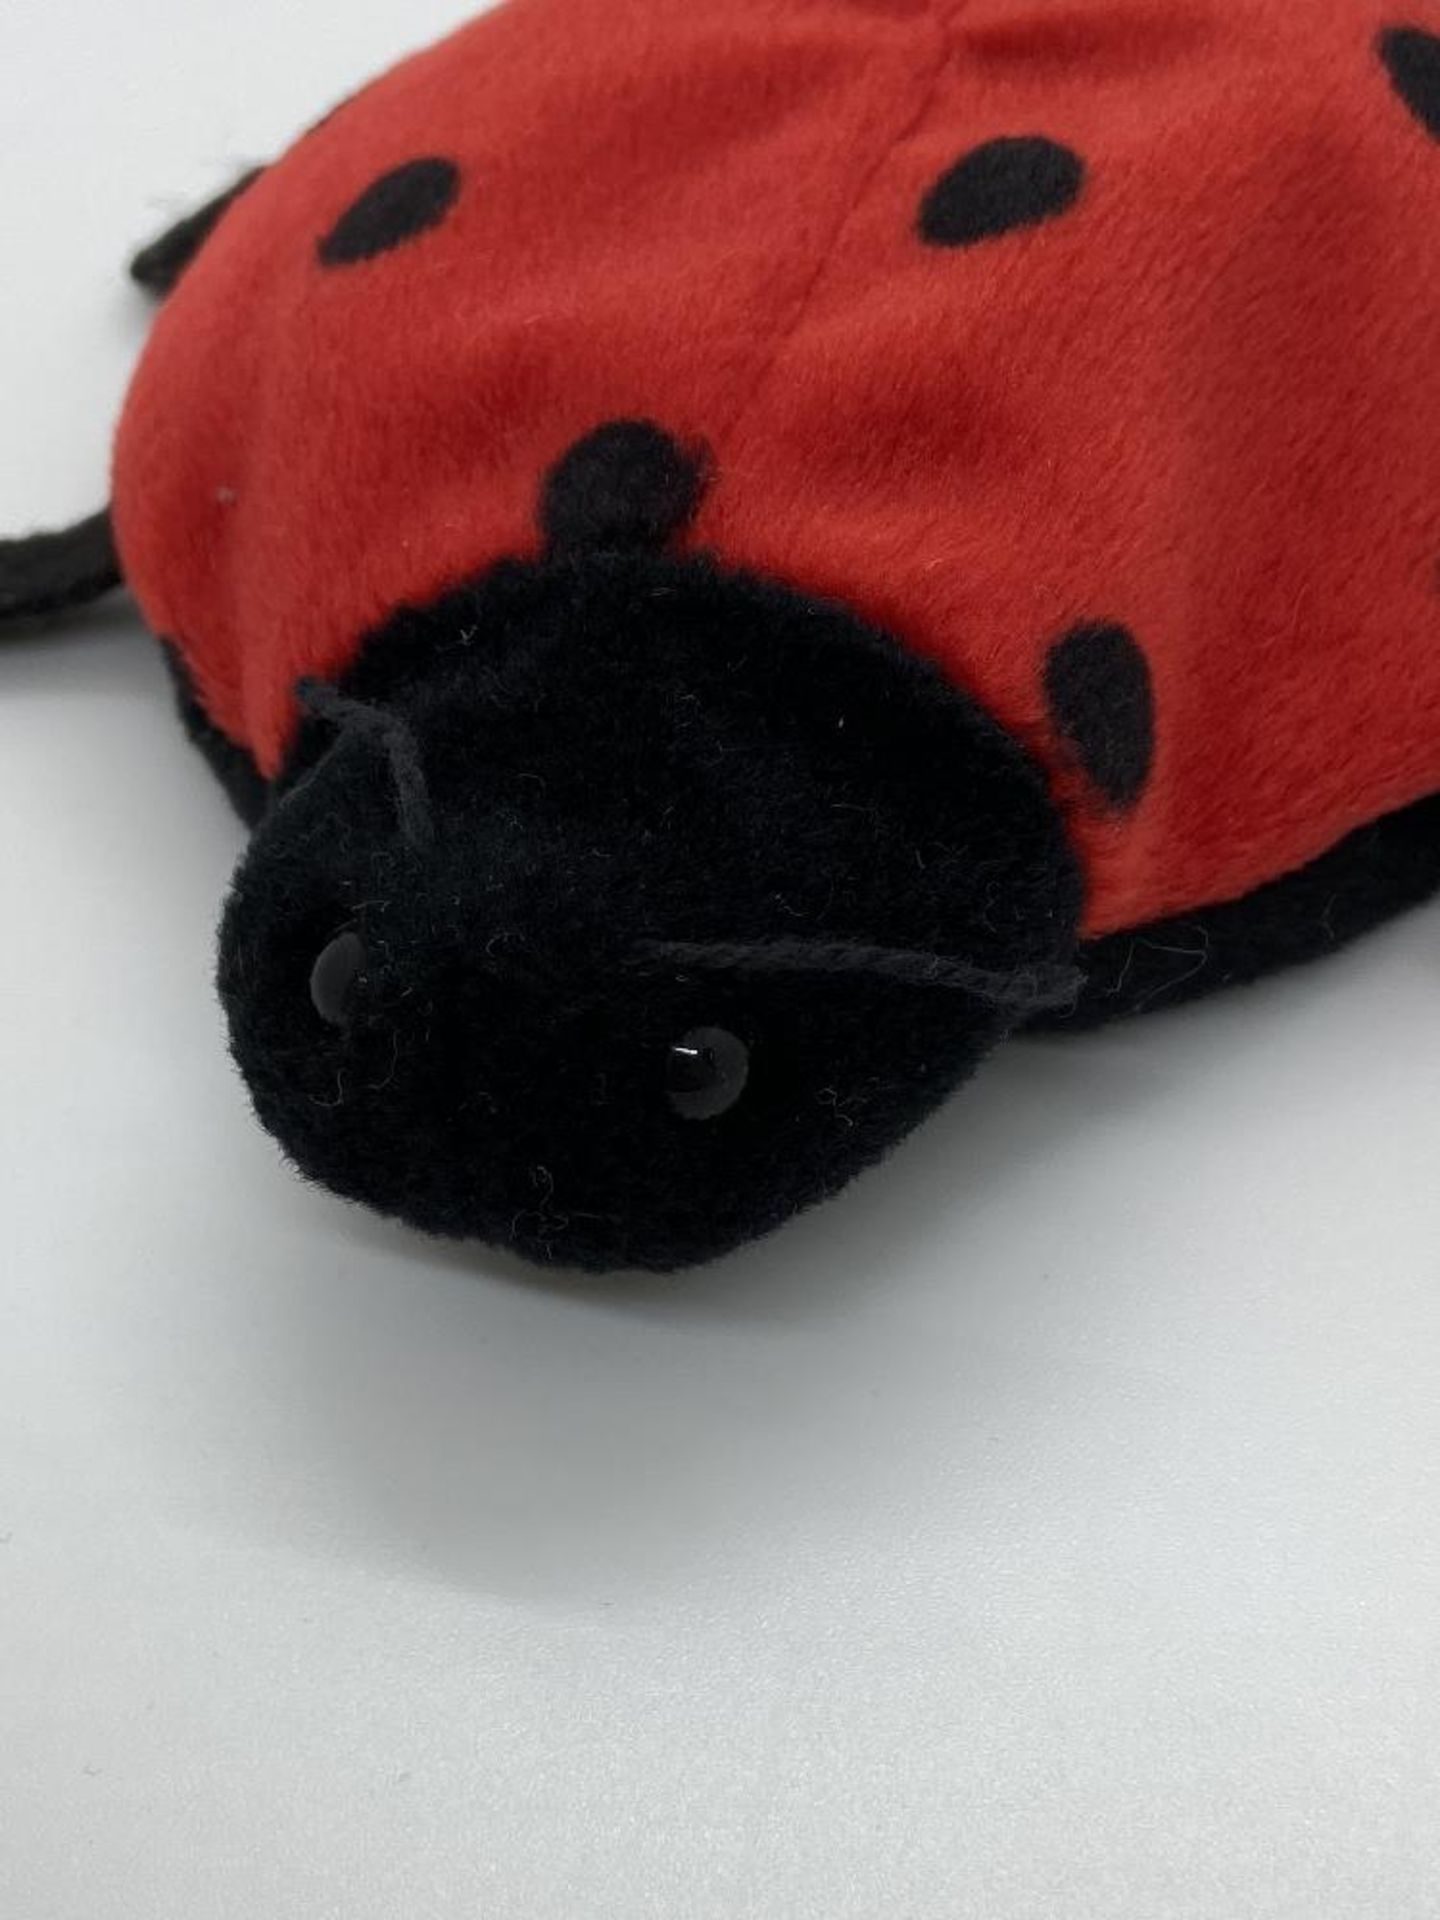 Ty Beanie Babies Lucky, The Ladybug, EARLY GEN 1993, PVC Pellets, w/o Hang Tag - Image 4 of 6